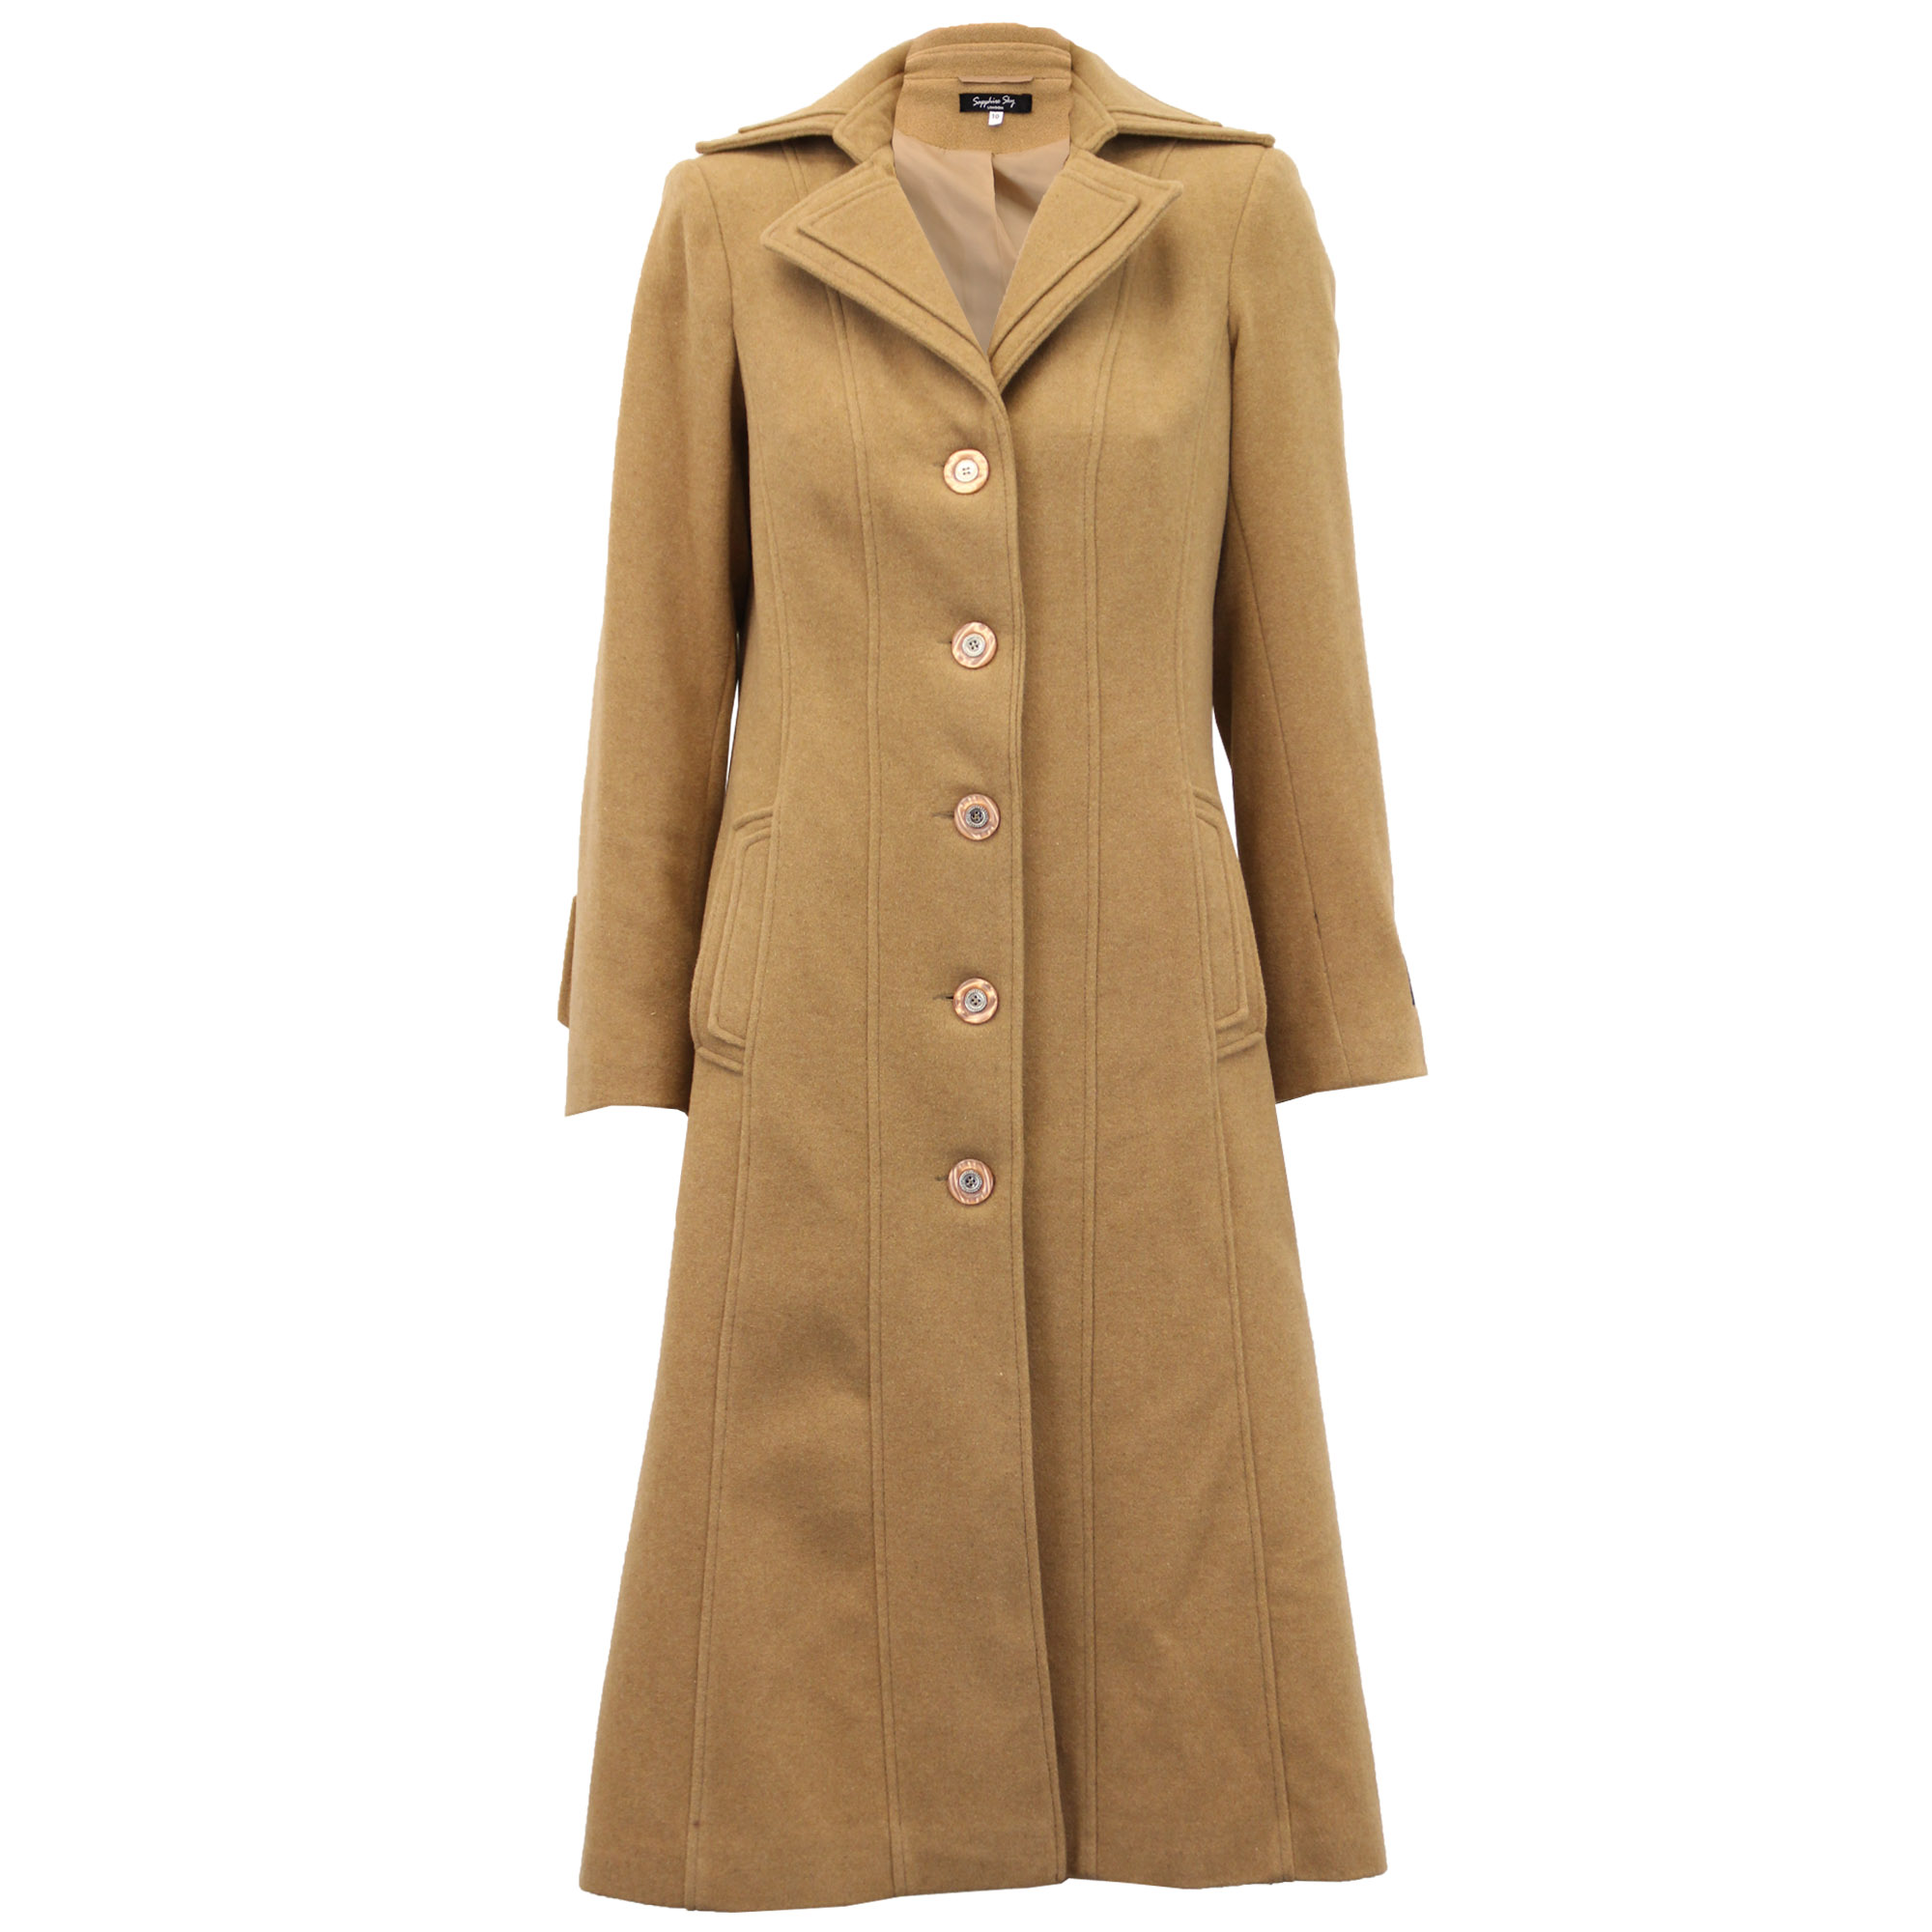 Ladies-Wool-Cashmere-Coat-Women-Jacket-Outerwear-Trench-Overcoat-Winter-Lined thumbnail 22